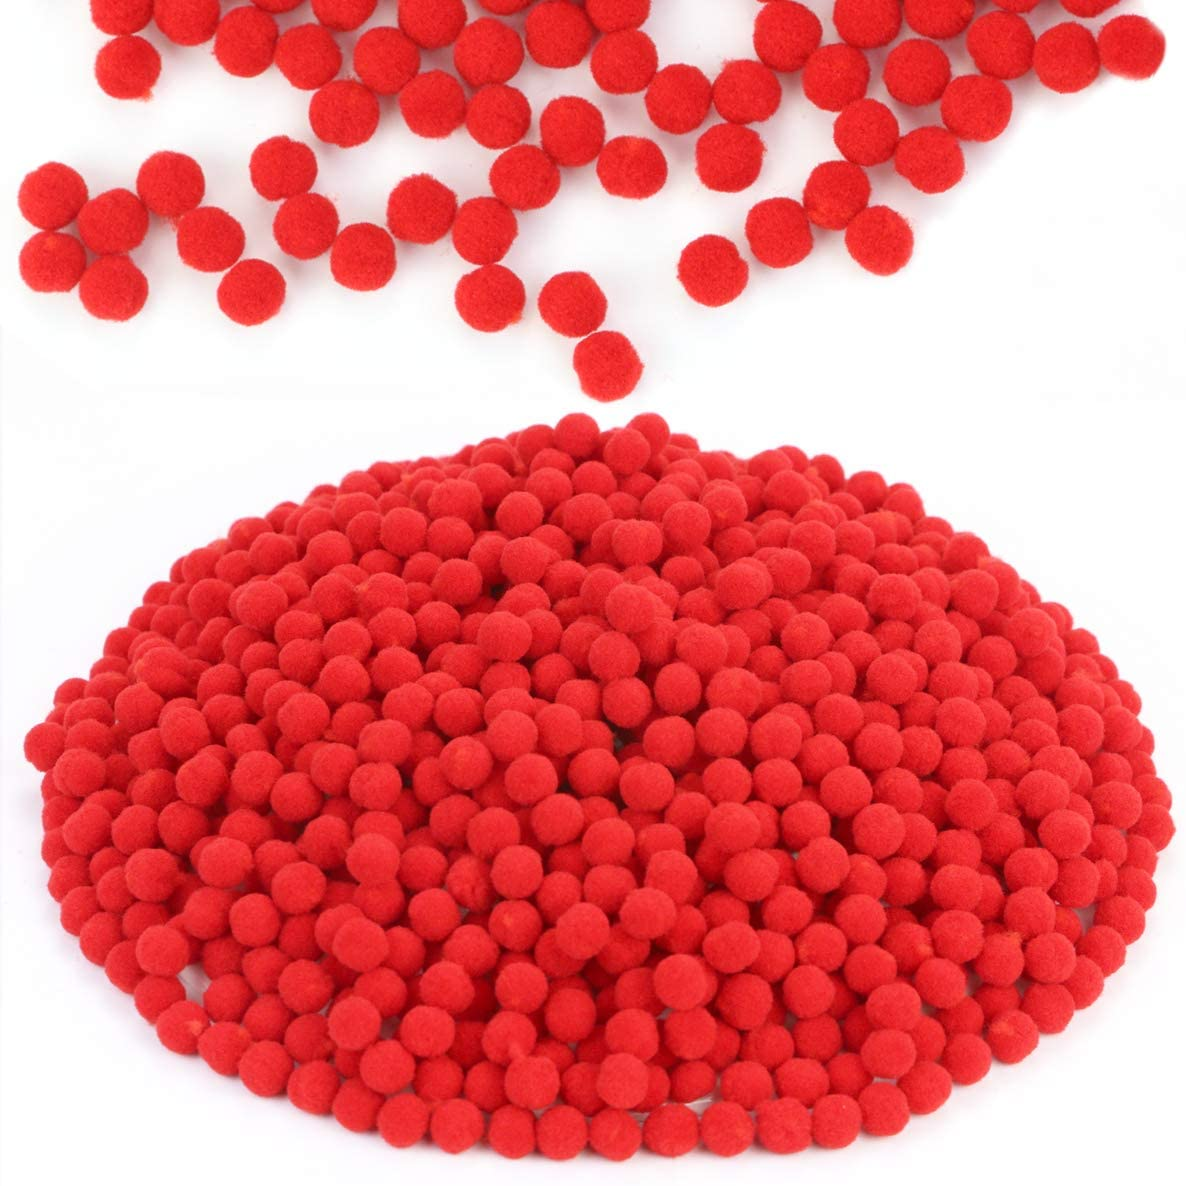 Acmer 1000 Pieces 1.2 cm/ 0.5 Inch Pompoms for Craft Making and Hobby Supplies (red)